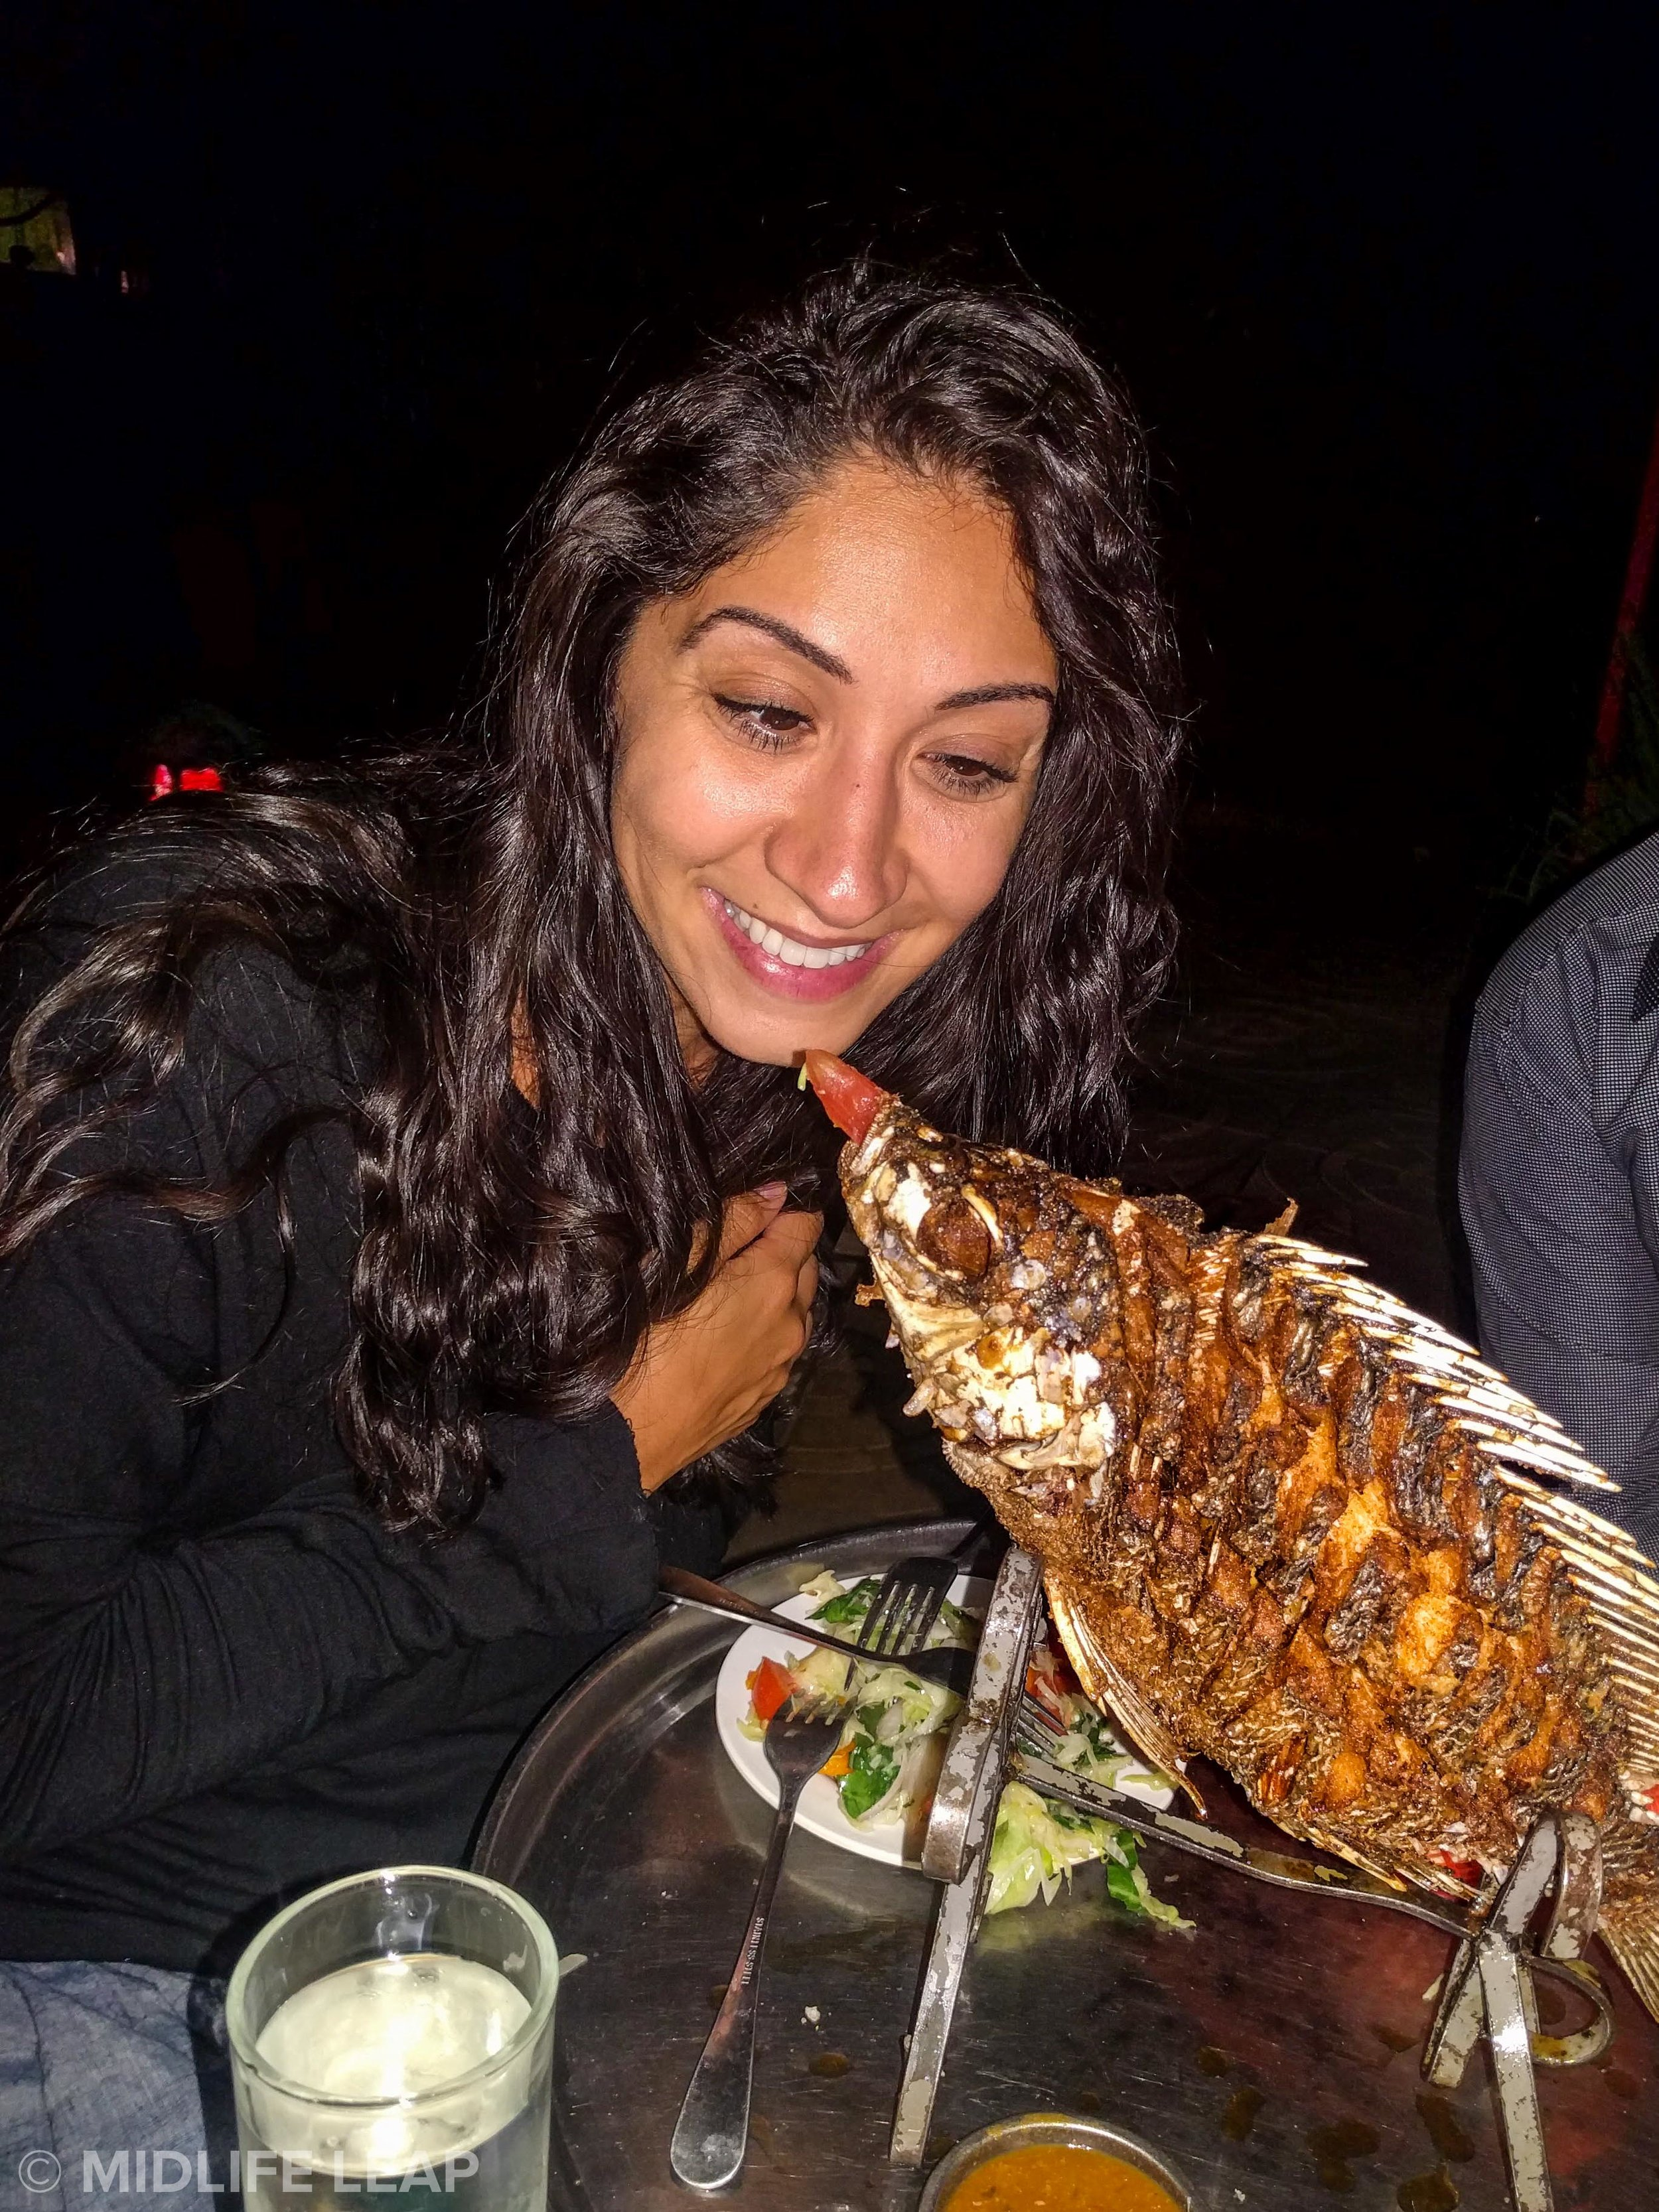 Whole fried fish? Yes please! My crazy eye not included